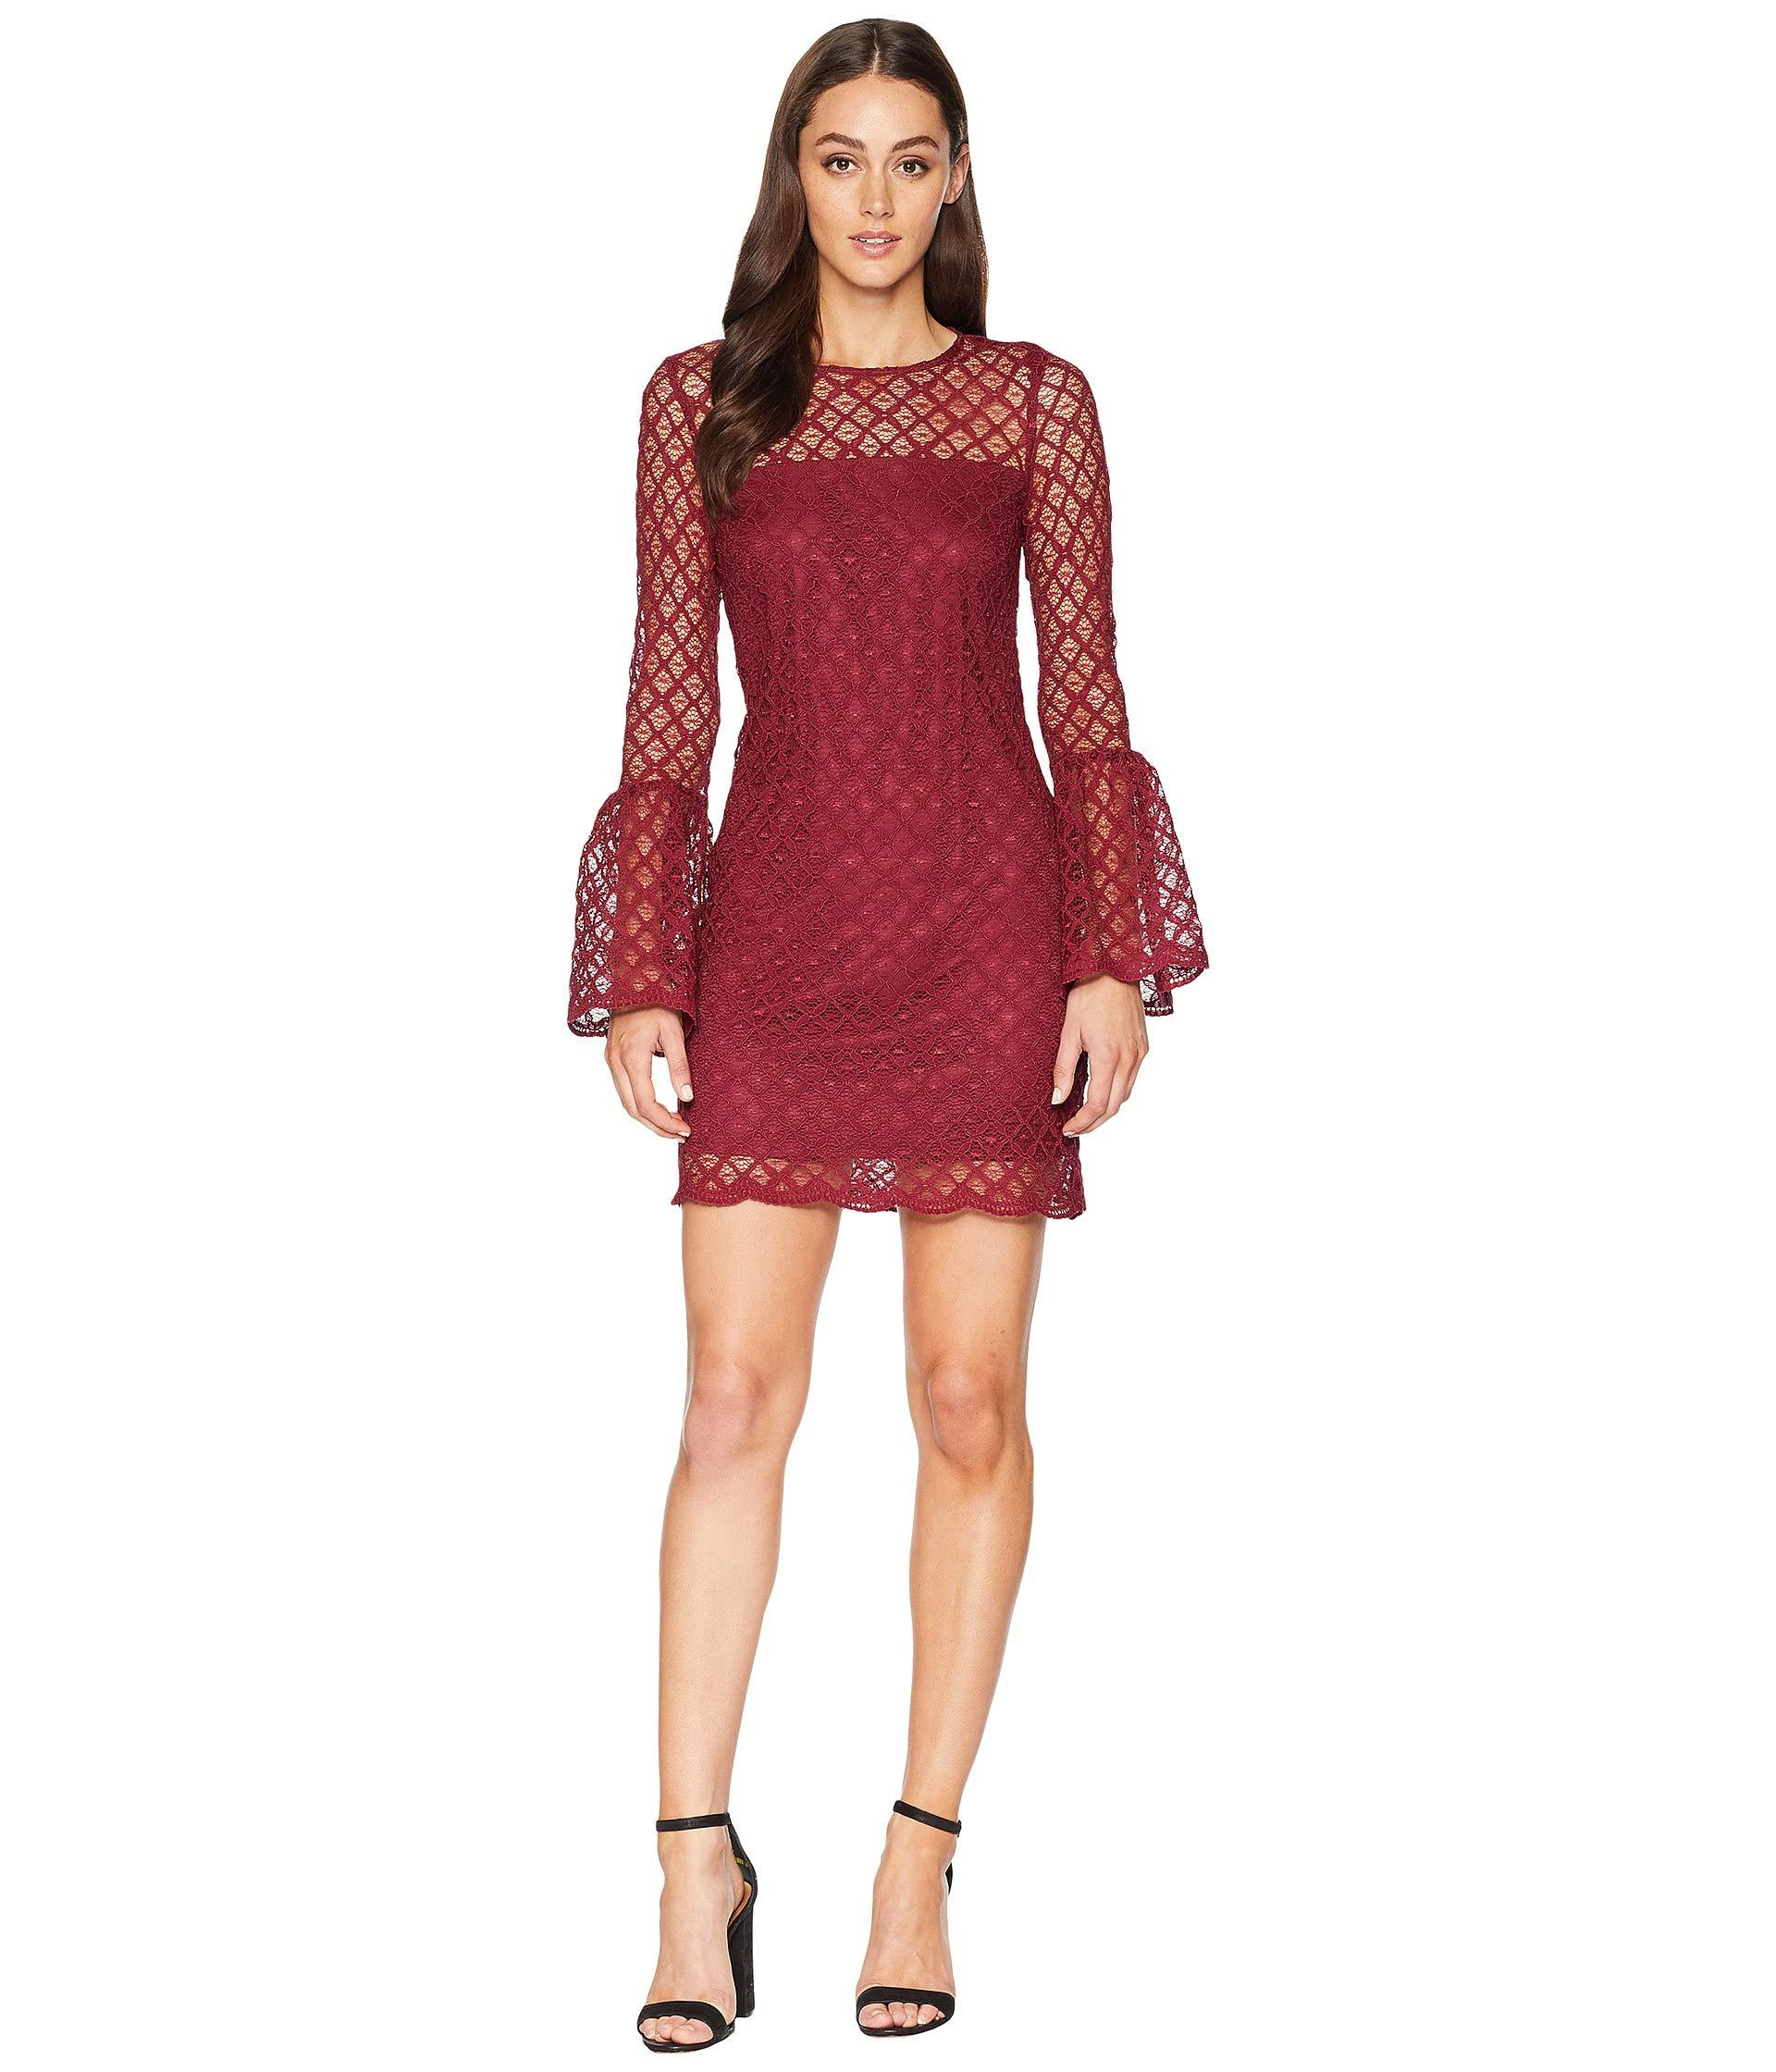 4c4f2ec510 Lyst - Laundry by Shelli Segal Lace Cocktail Dress With Bell Sleeves ...